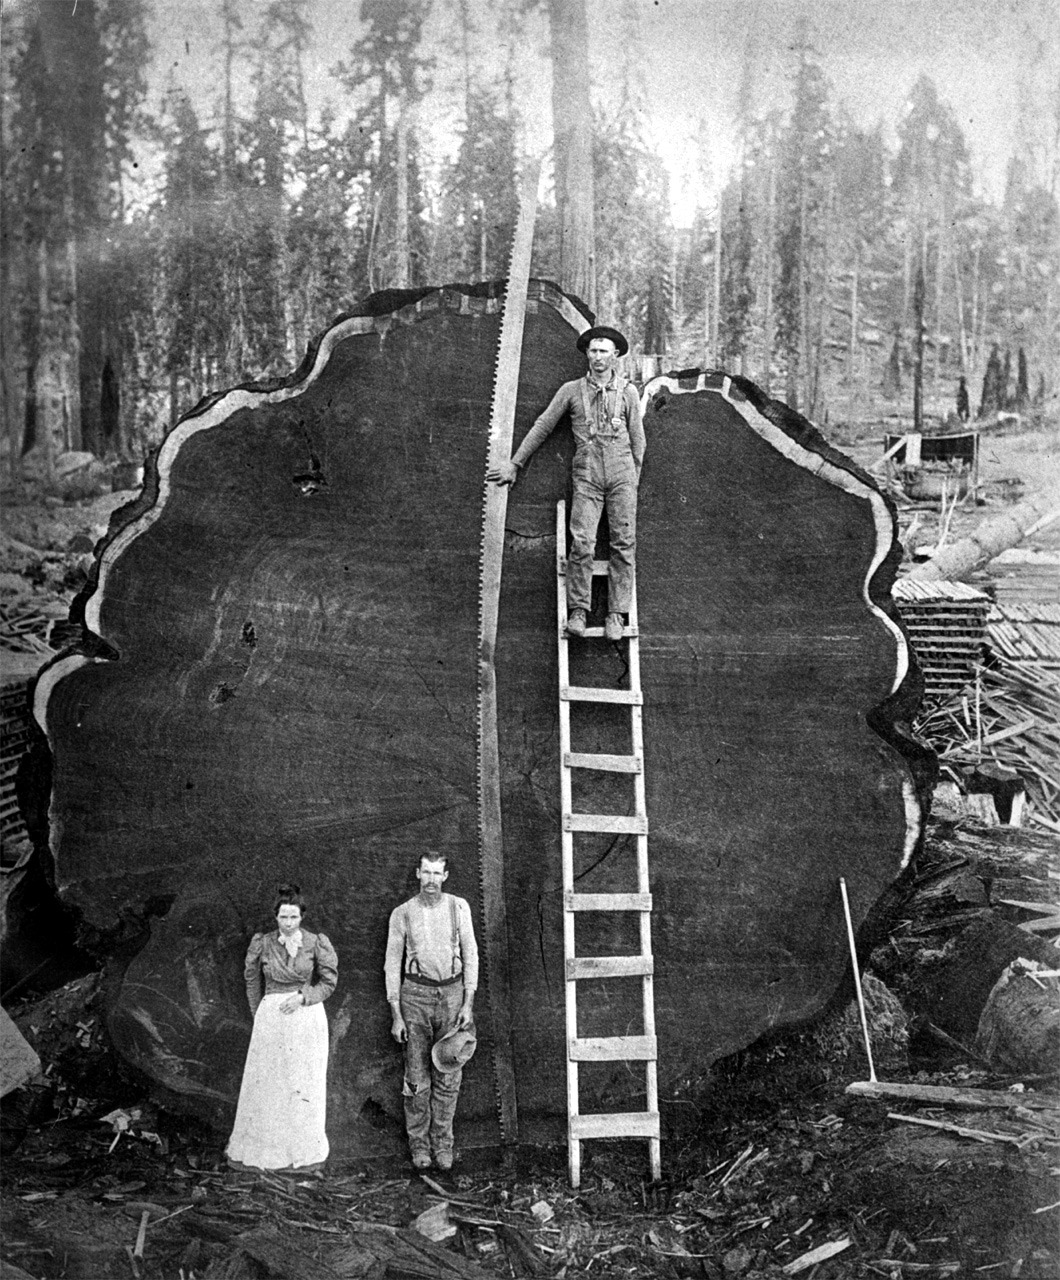 A giant sequoia log, Sequoia National Park, California, undated, c1910. via Historic American Engineering Record